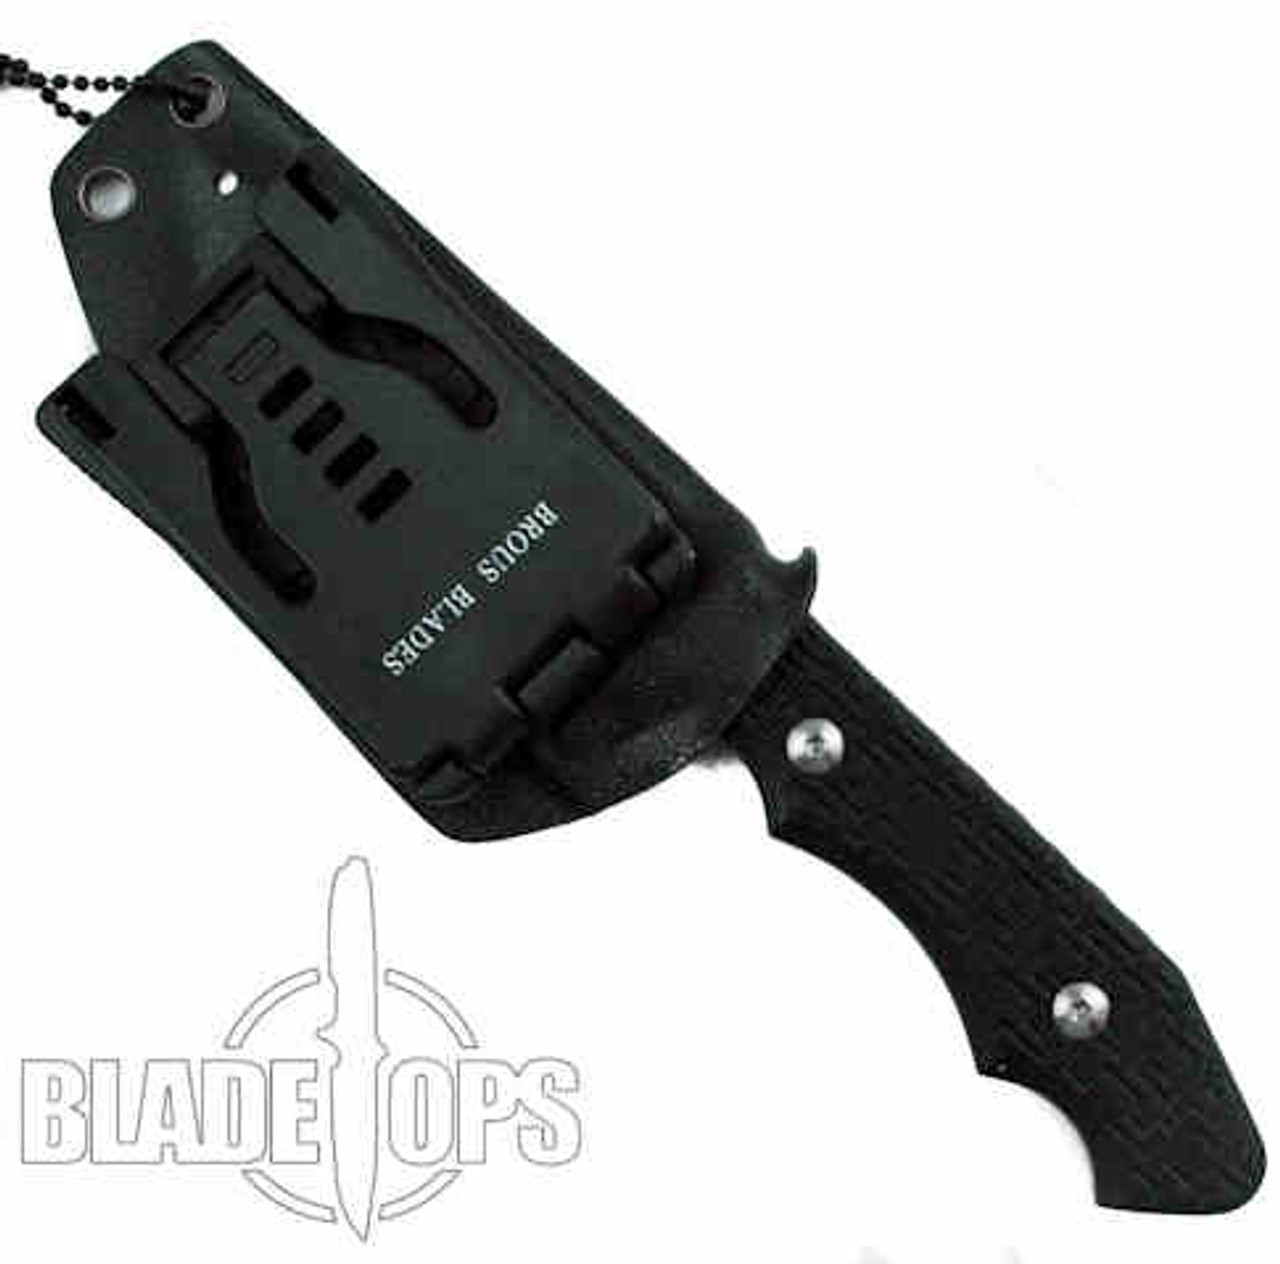 Brous Blades Triple Threat Fixed Blade Knife, Black D2 Blade